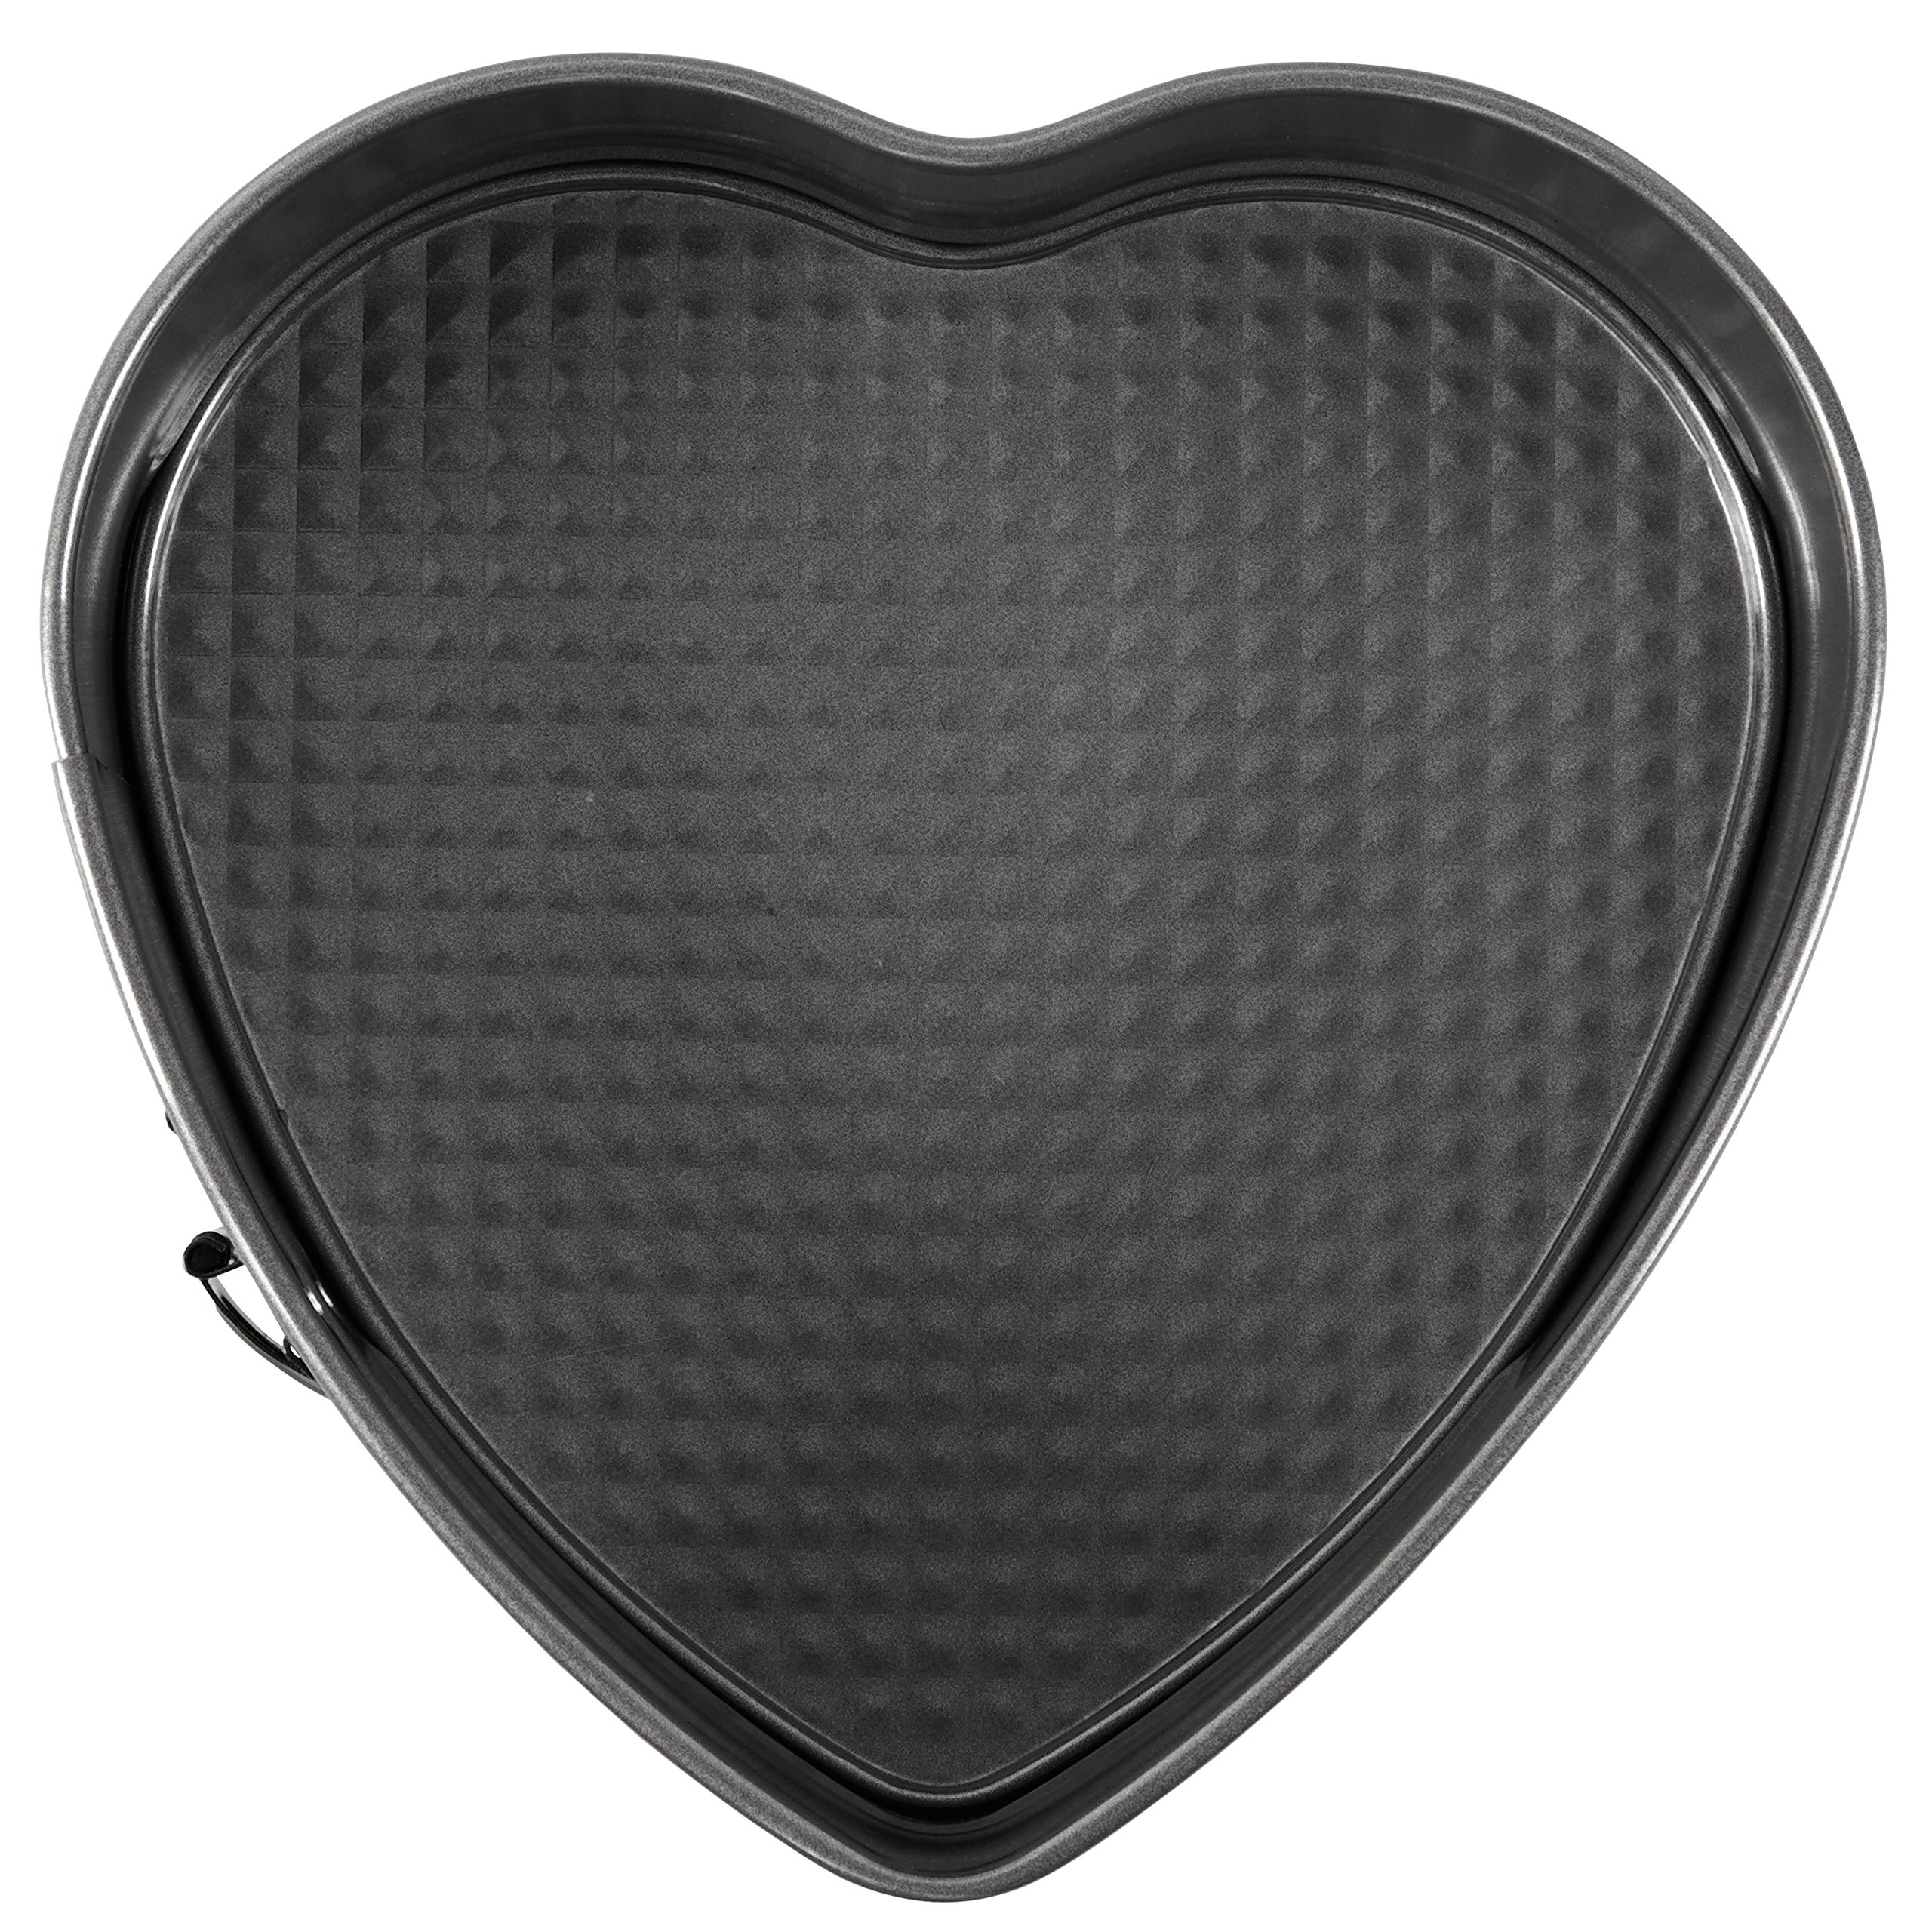 Wilton Excelle Elite Non-Stick Heart-Shaped Springform Pan, 9.5-Inch